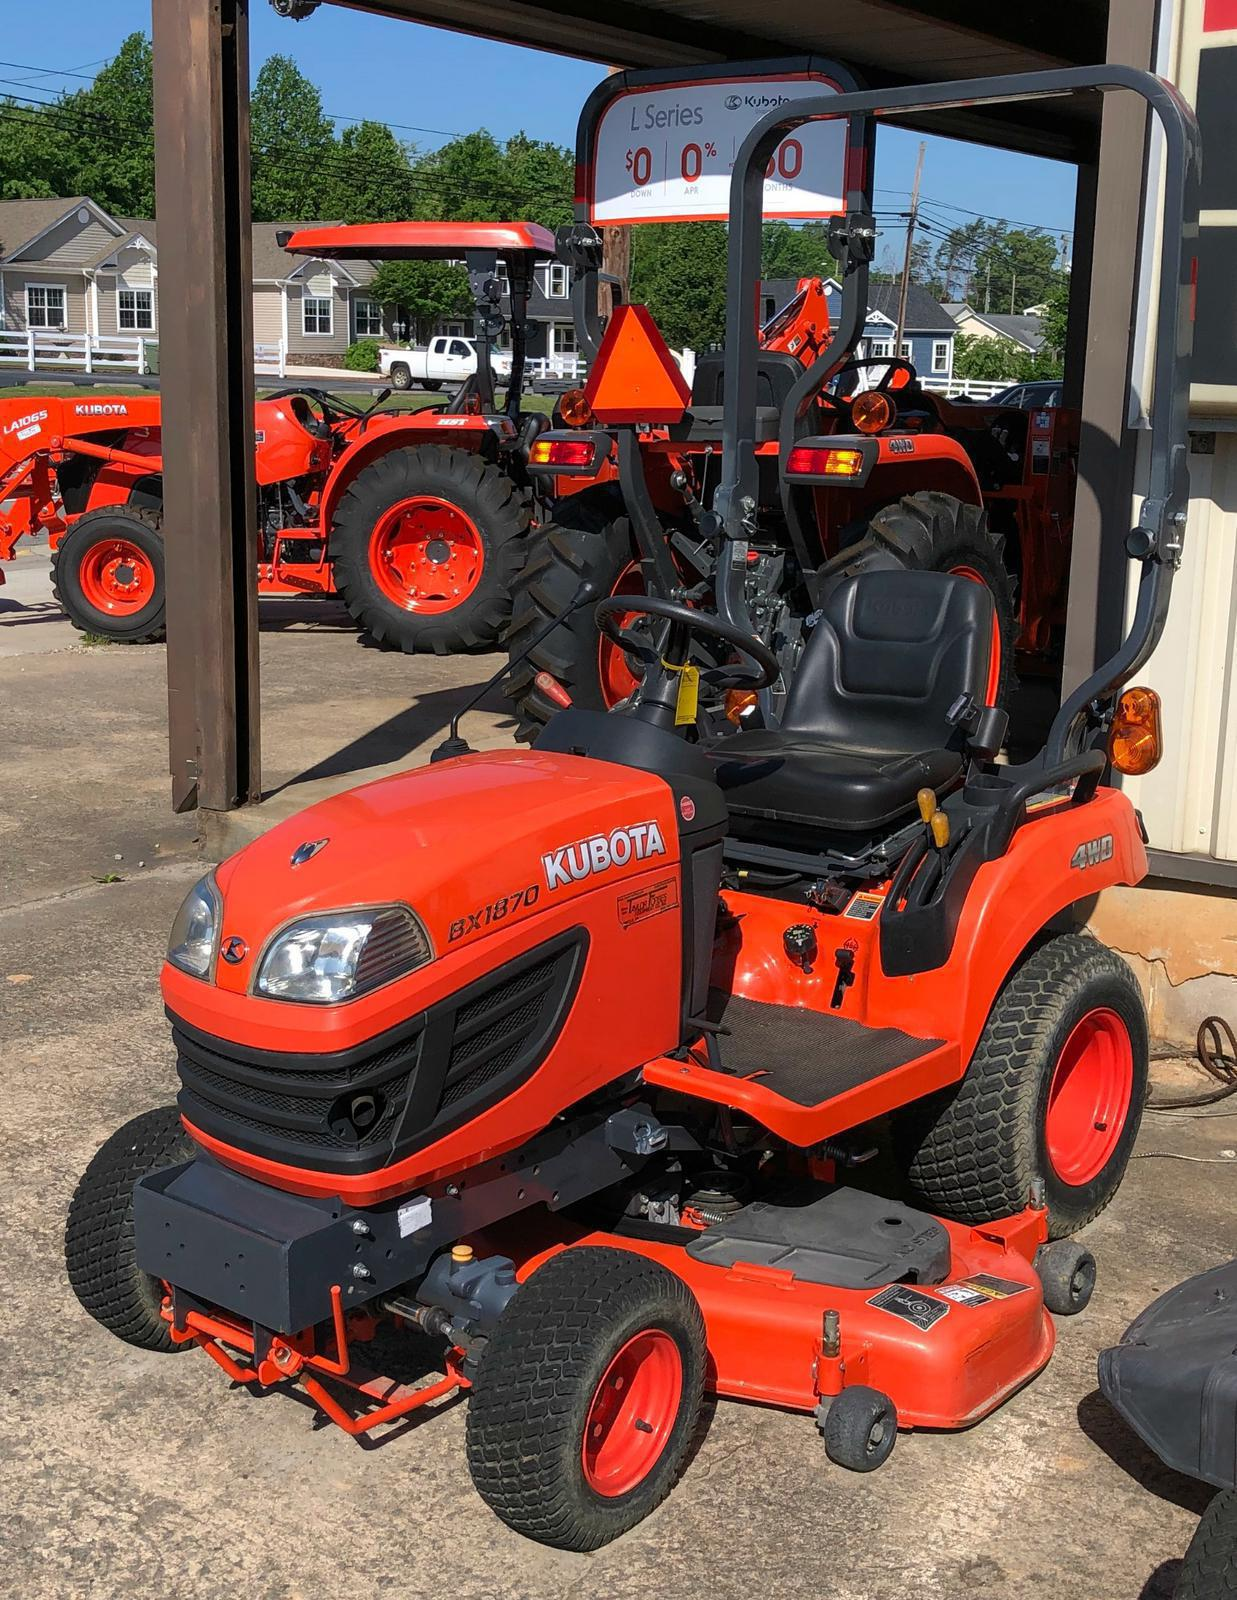 Tractors from Kubota Taylor-Forbes Equipment Company, Inc